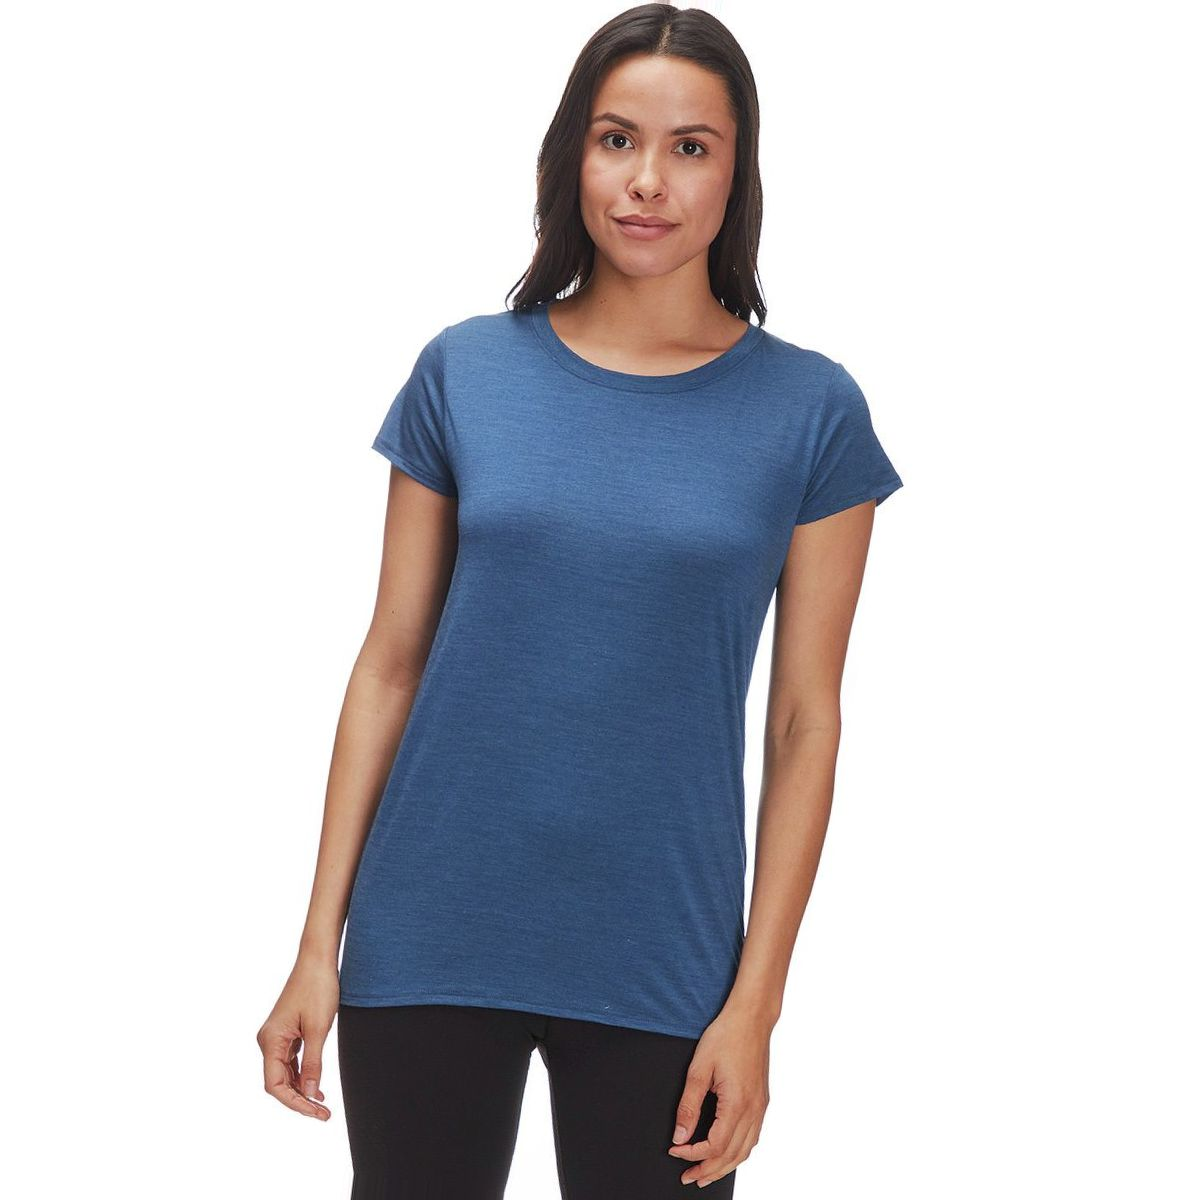 Northern Playground Short-Sleeve T-Shirt - Women's